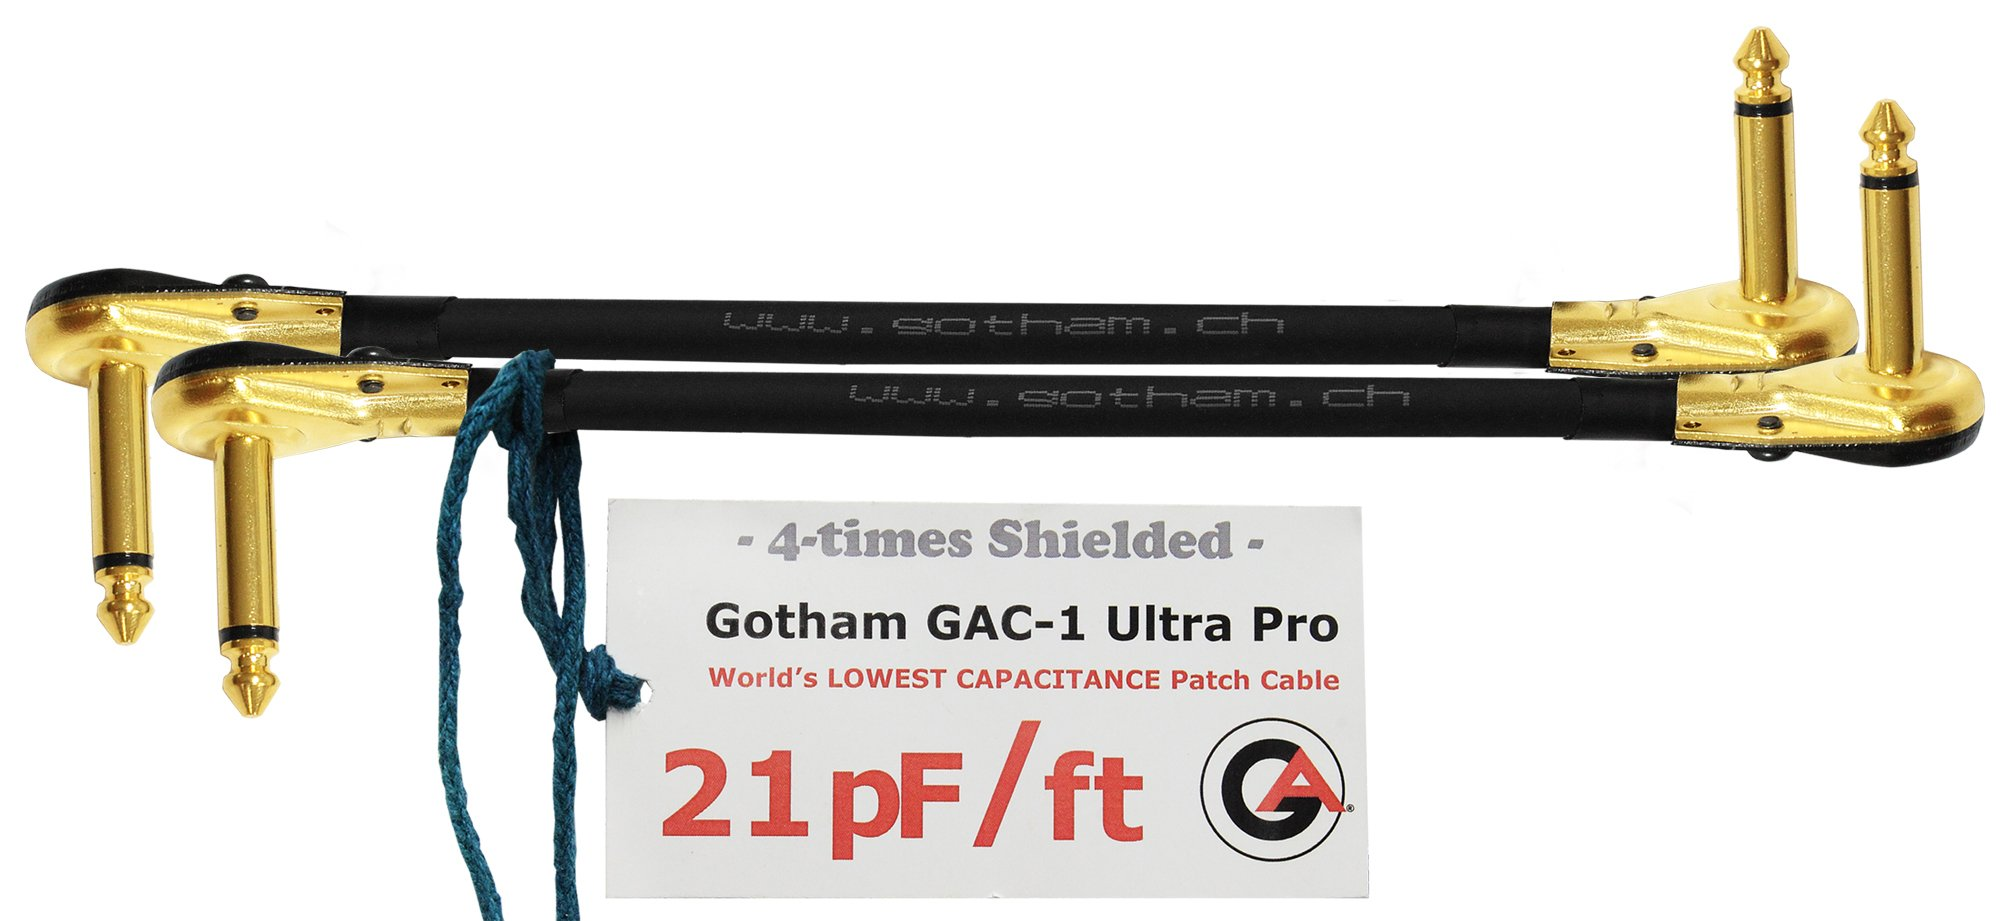 2 Units - 12 Inch - Gotham GAC-1 Ultra Pro - Low-Cap (21pF/ft) Guitar Bass Effects Instrument, S-Shaped Patch Cable & Gold (6.35mm) Low-Profile R/A Pancake Plugs - CUSTOM MADE By WORLDS BEST CABLES